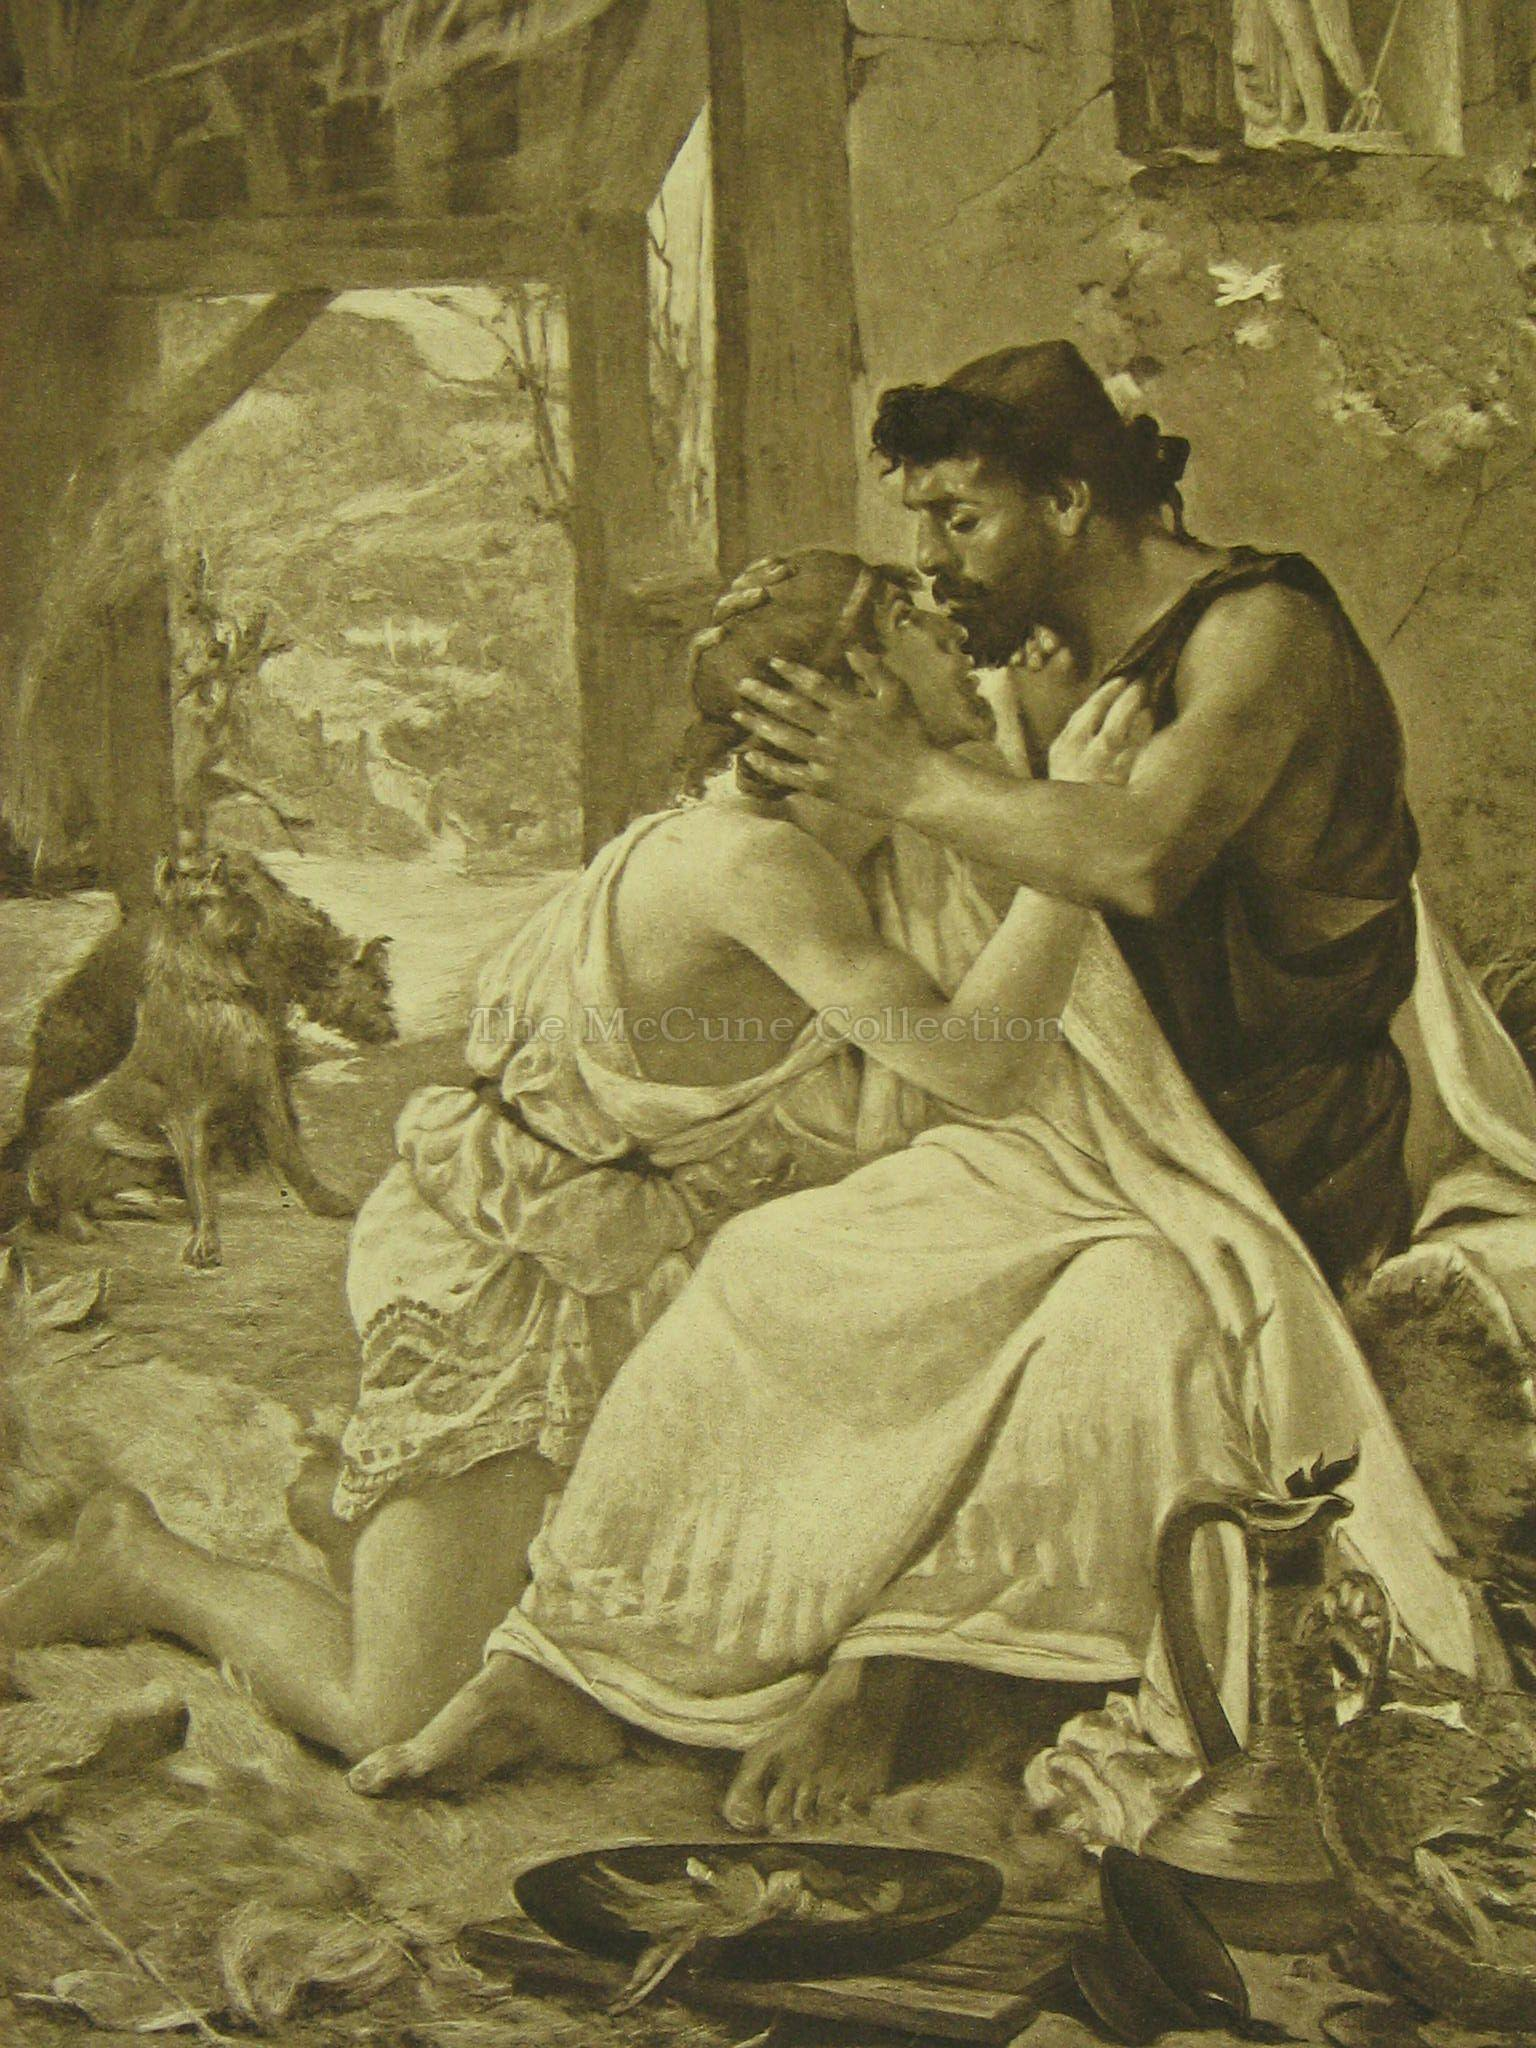 the maturation of telemachus in homers odyssey The maturation of telemachus in the first book of homer's the odyssey, we are introduced to odysseus' son, telemachus it is here we learn of odysseus' troubles and the situation regarding his estate and those who are presently inhabiting it.